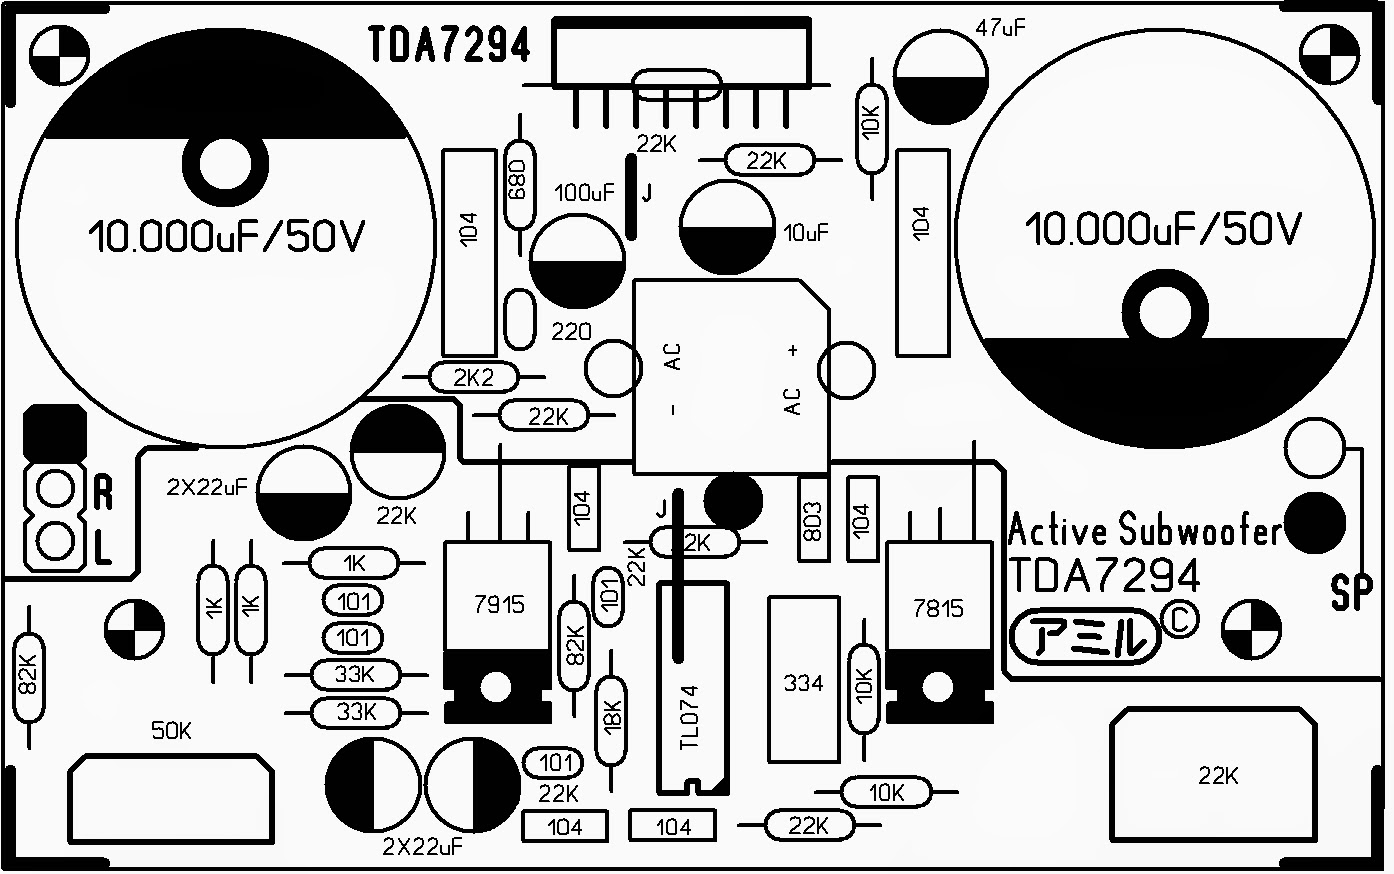 DIY ELECTRONICS PROJECTS: Active subwoofer TDA7294 | Proyek untuk ...